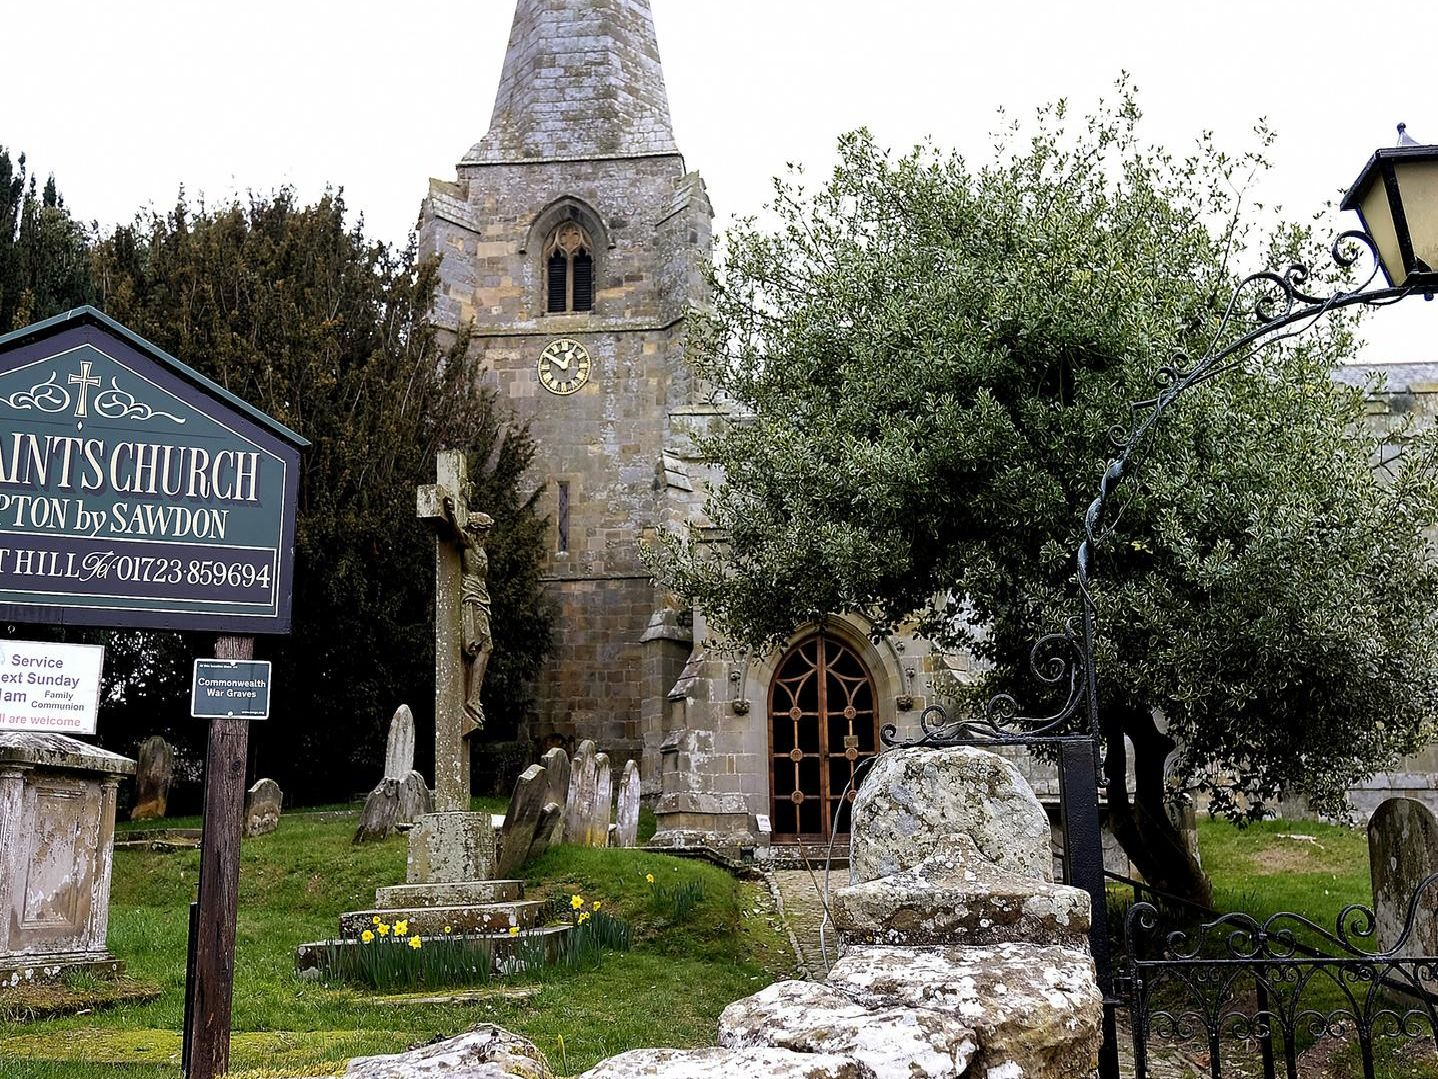 All Saints' Church in Brompton celebrates the life and work of both poet William Wordsworth and inventor and philanthropist George Cayley